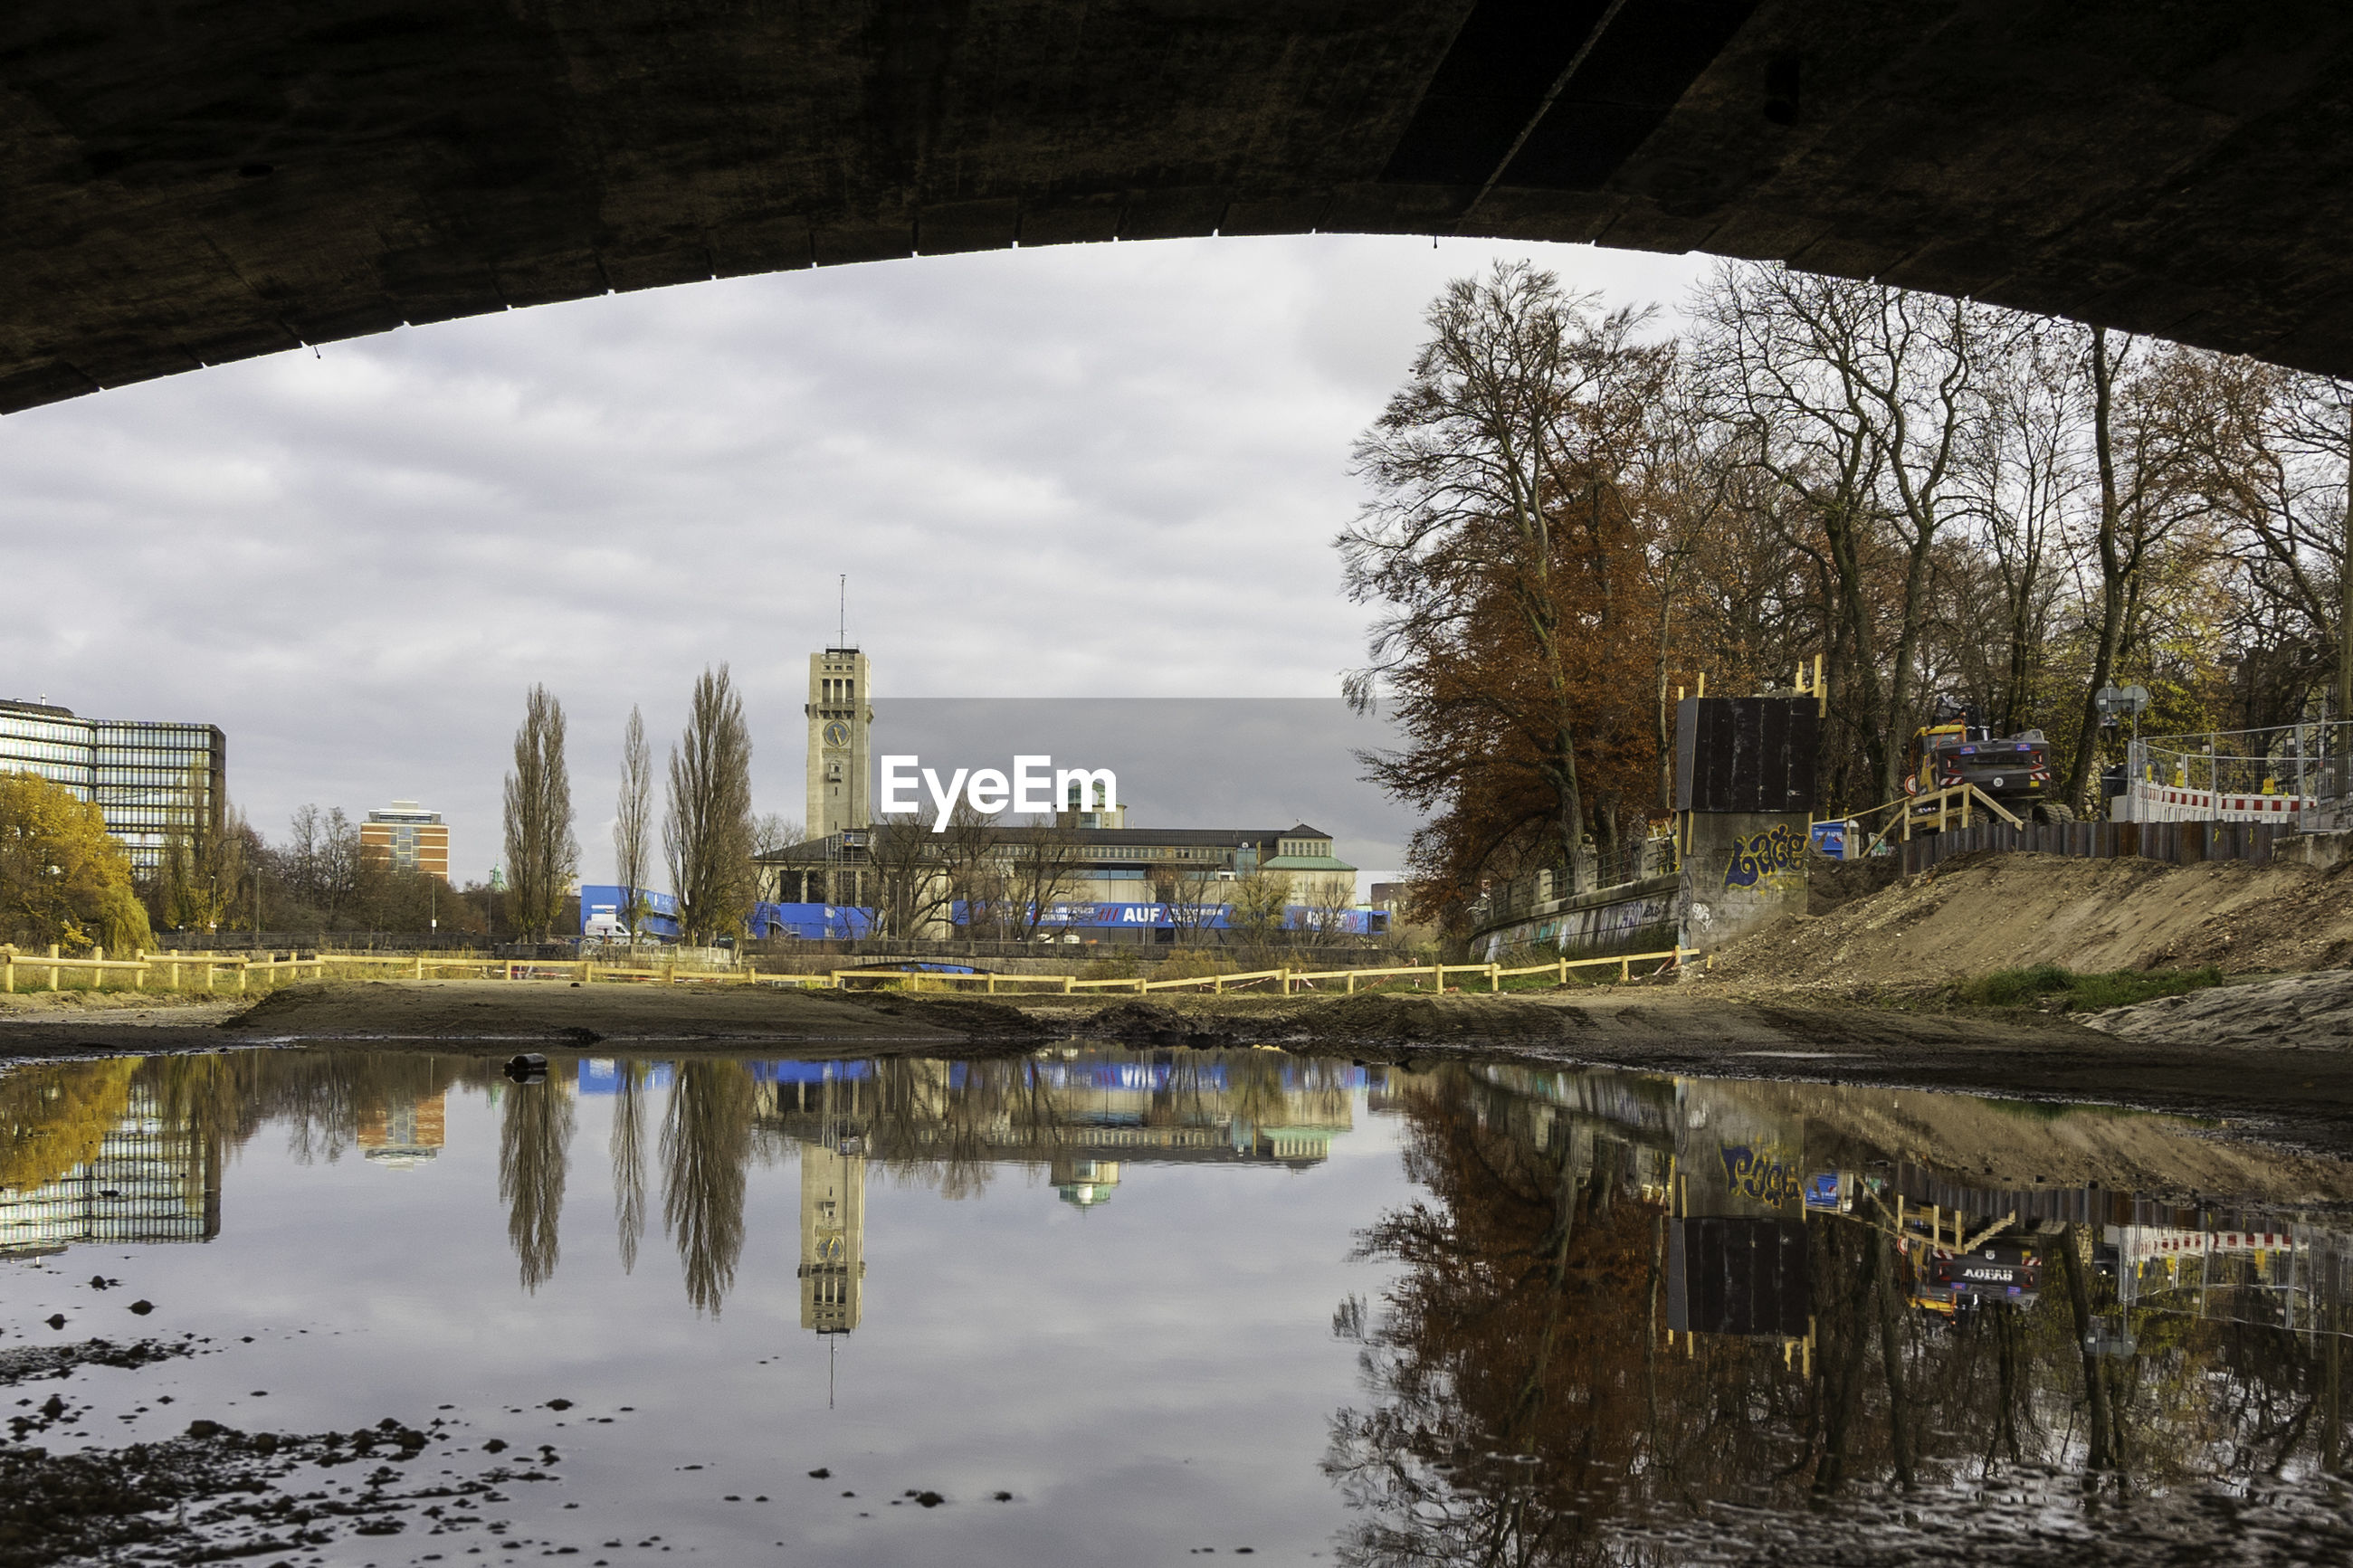 REFLECTION OF BRIDGE AND BUILDINGS ON RIVER